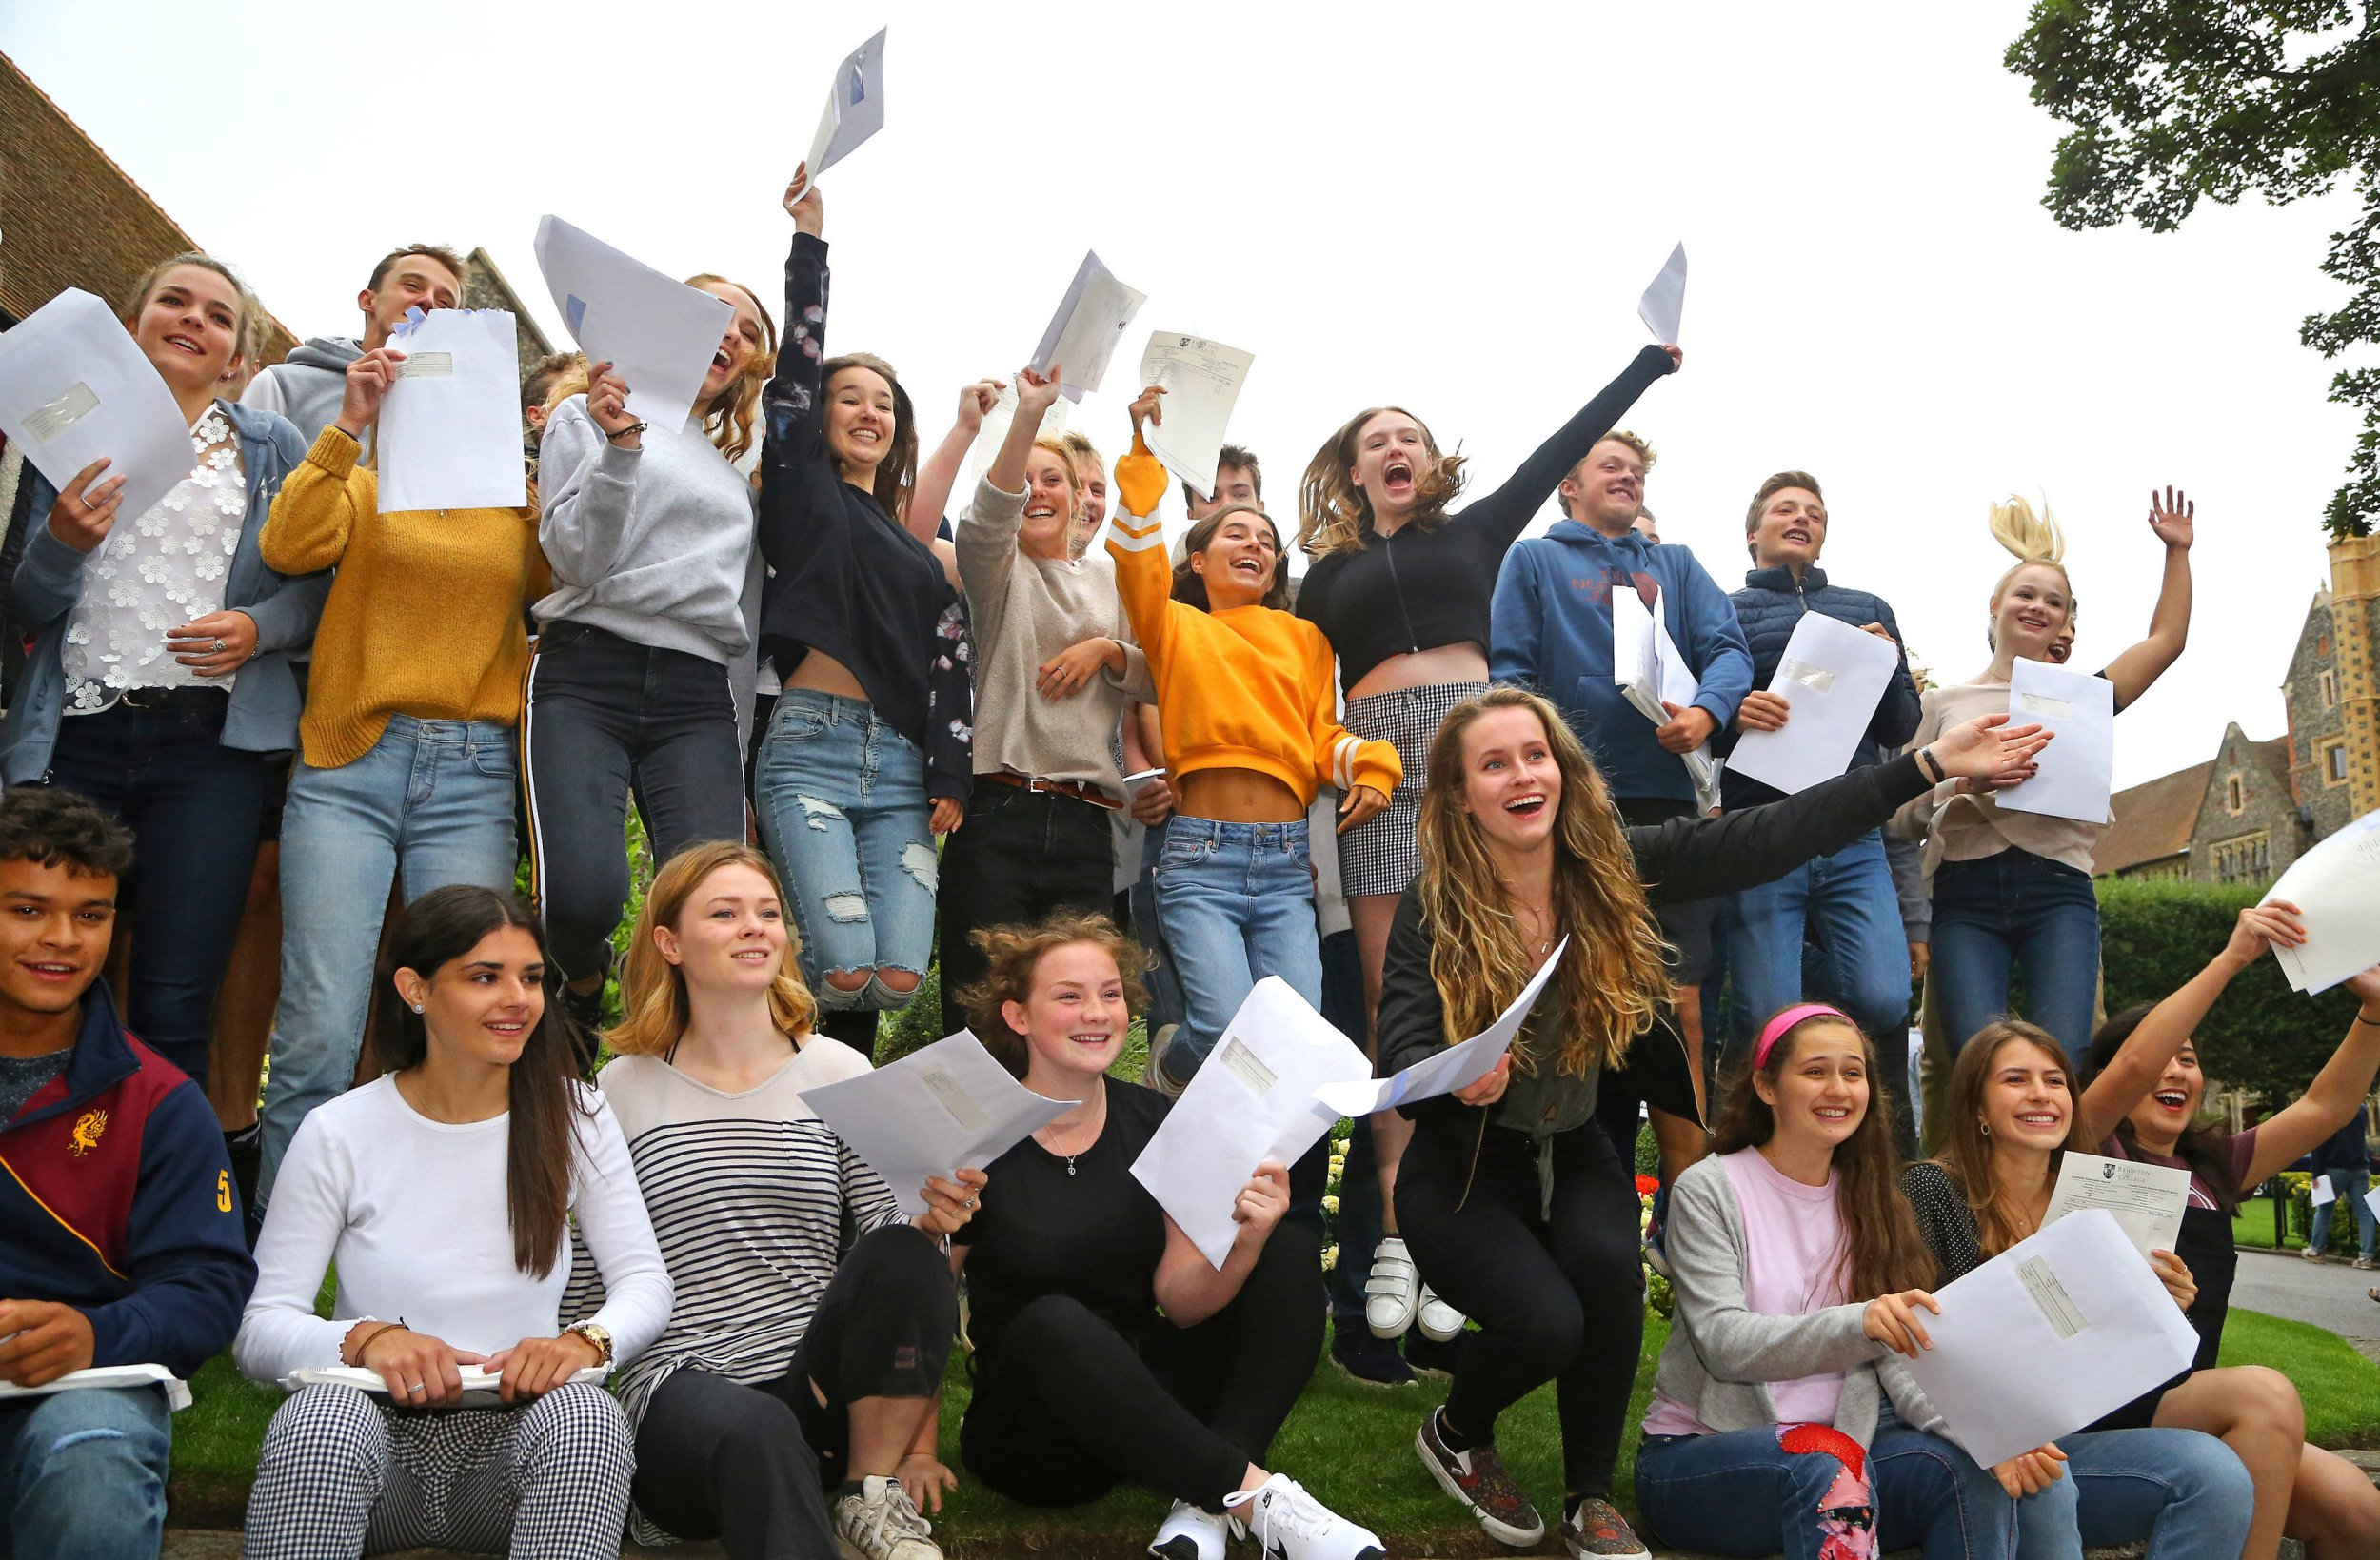 Students celebrate their A Level results at Brighton College in East Sussex. PRESS ASSOCIATION Photo. Picture date: Thursday August 16, 2018. See PA story EDUCATION Alevels. Photo credit should read: Gareth Fuller/PA Wire